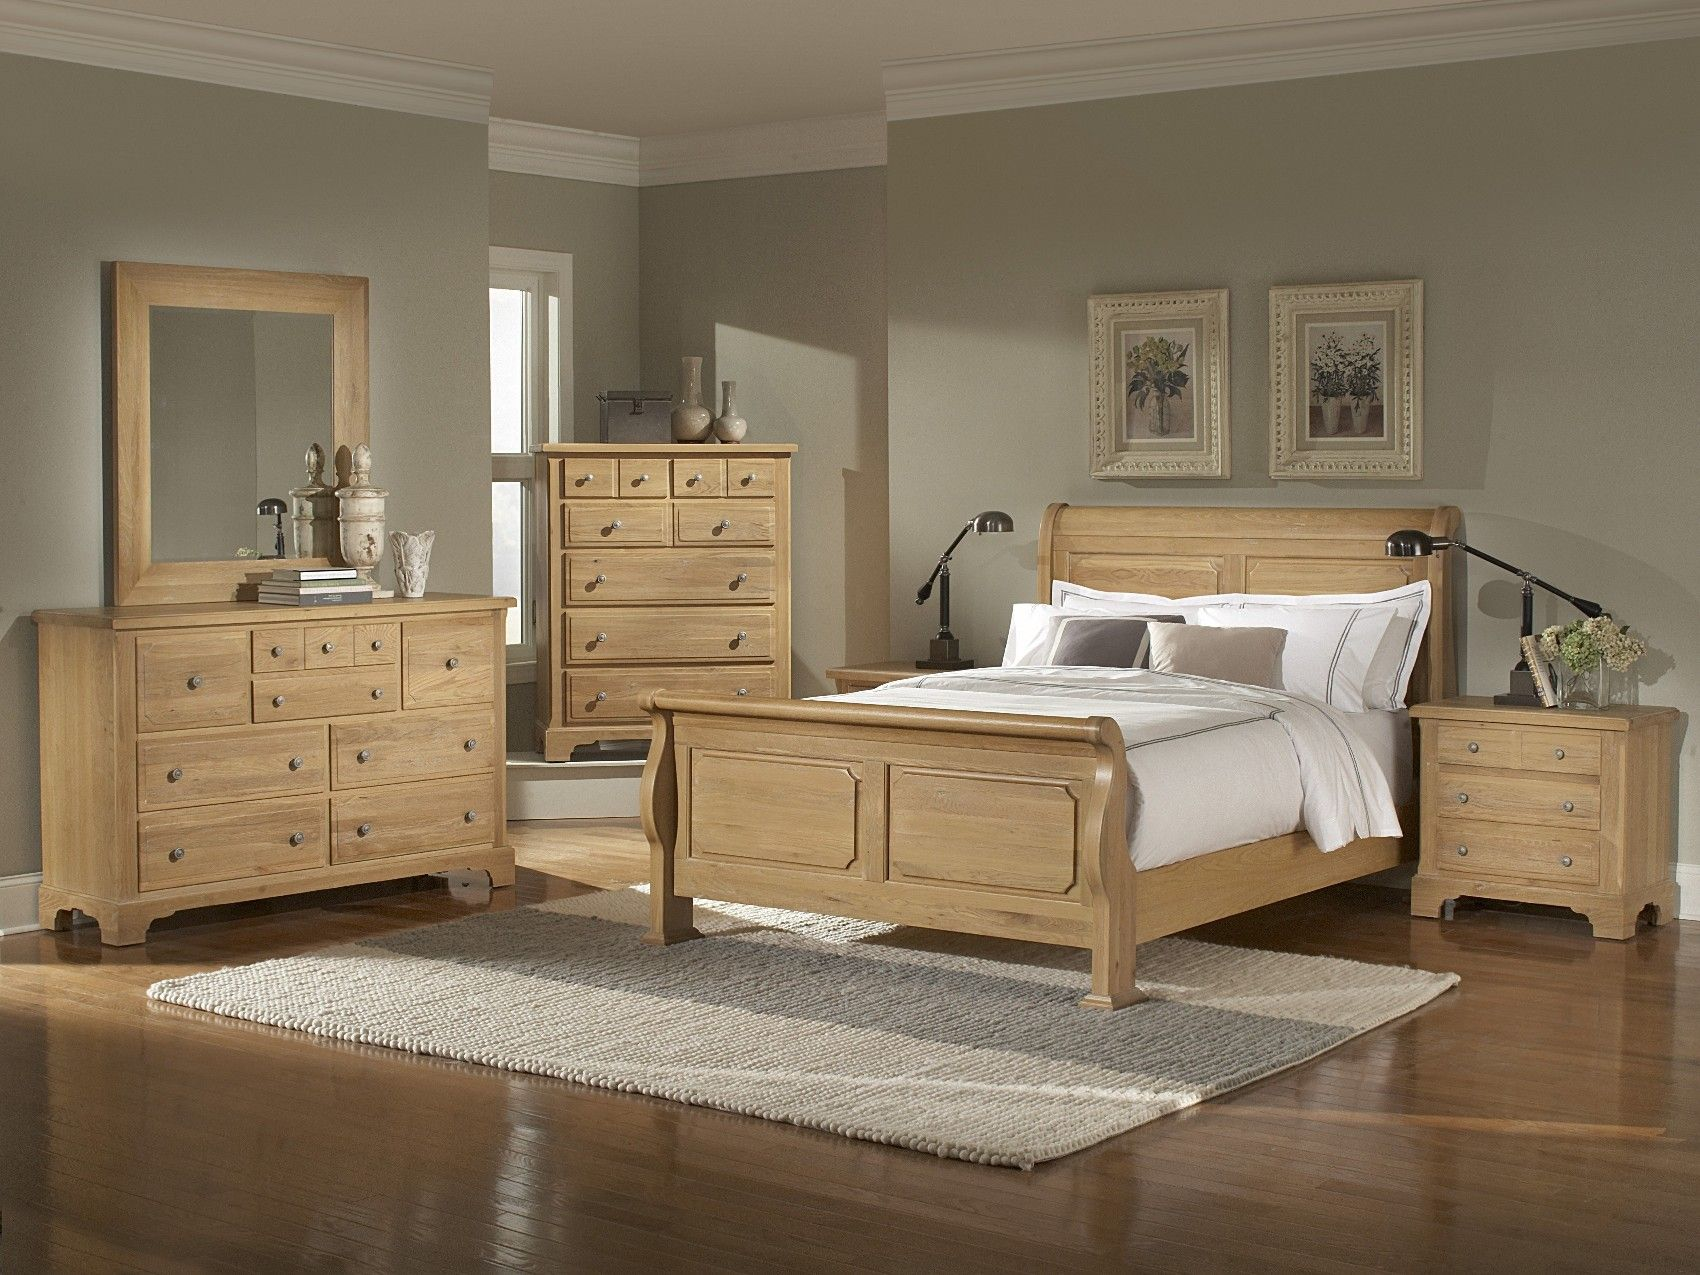 25 best ideas about Oak Bedroom Furniture on PinterestPainting